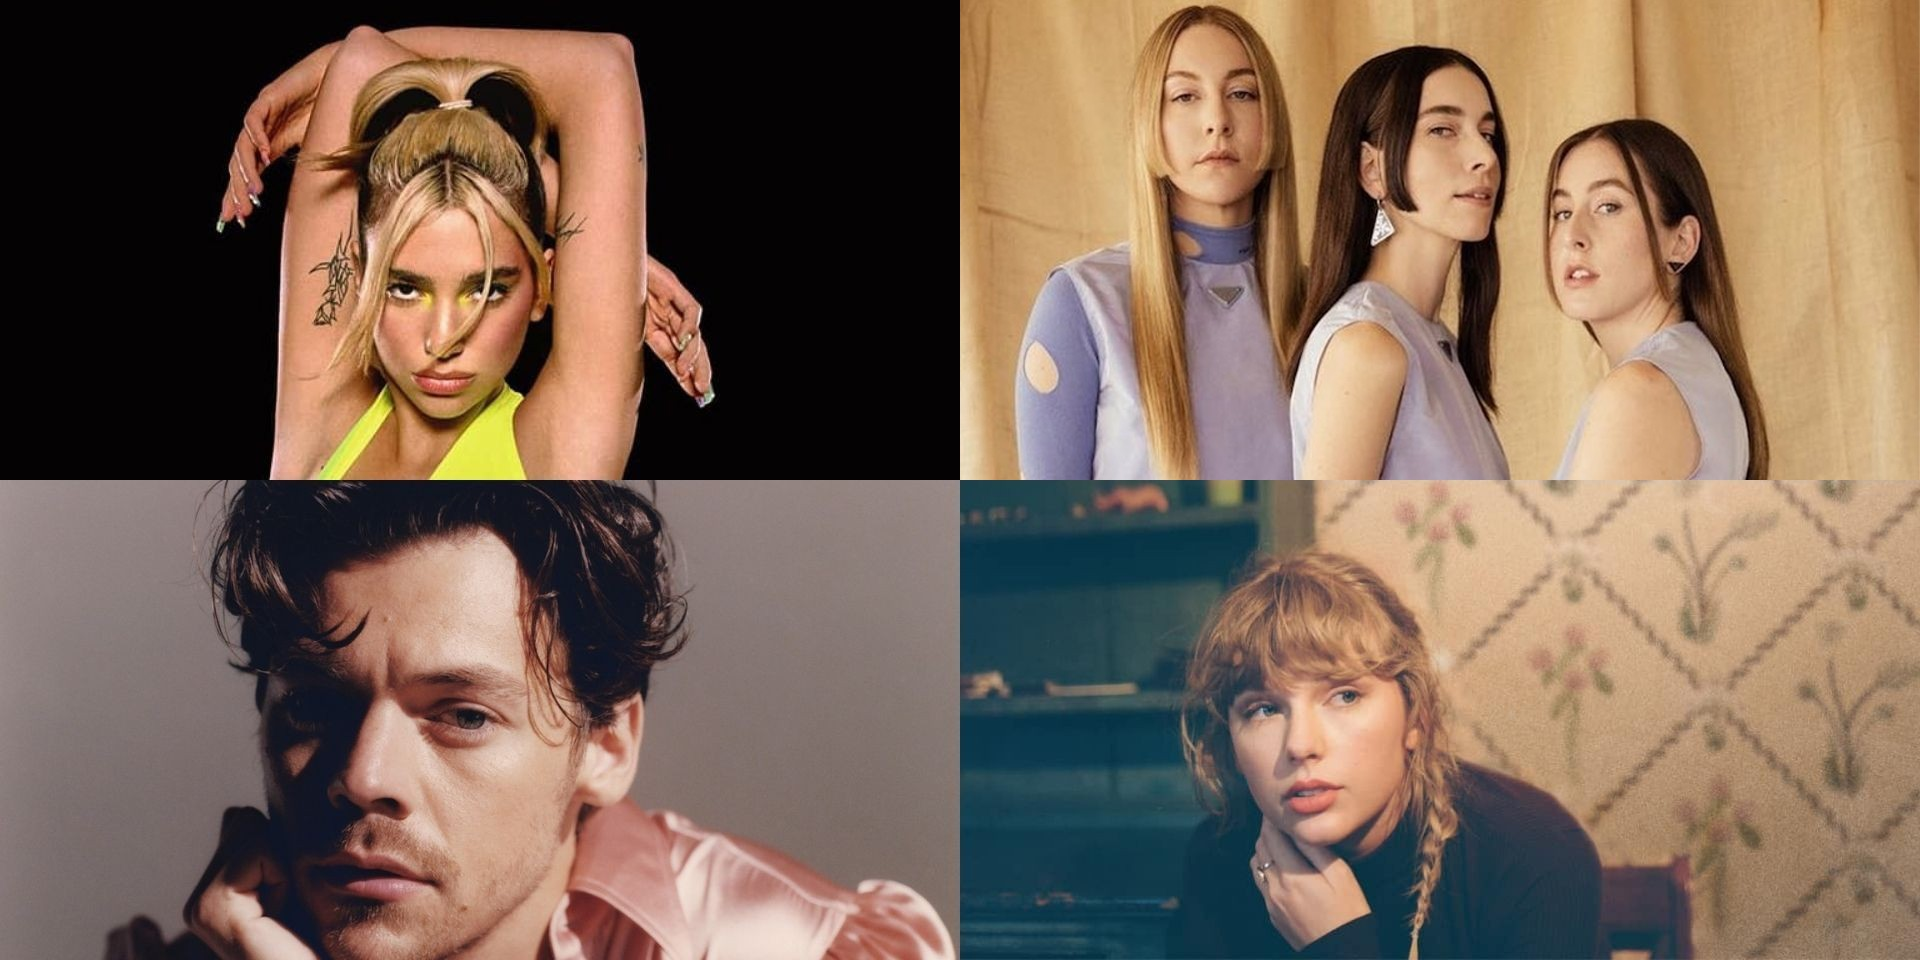 Here are the winners of the 2021 BRIT Awards — Taylor Swift, Dua Lipa, Harry Styles, HAIM, and more